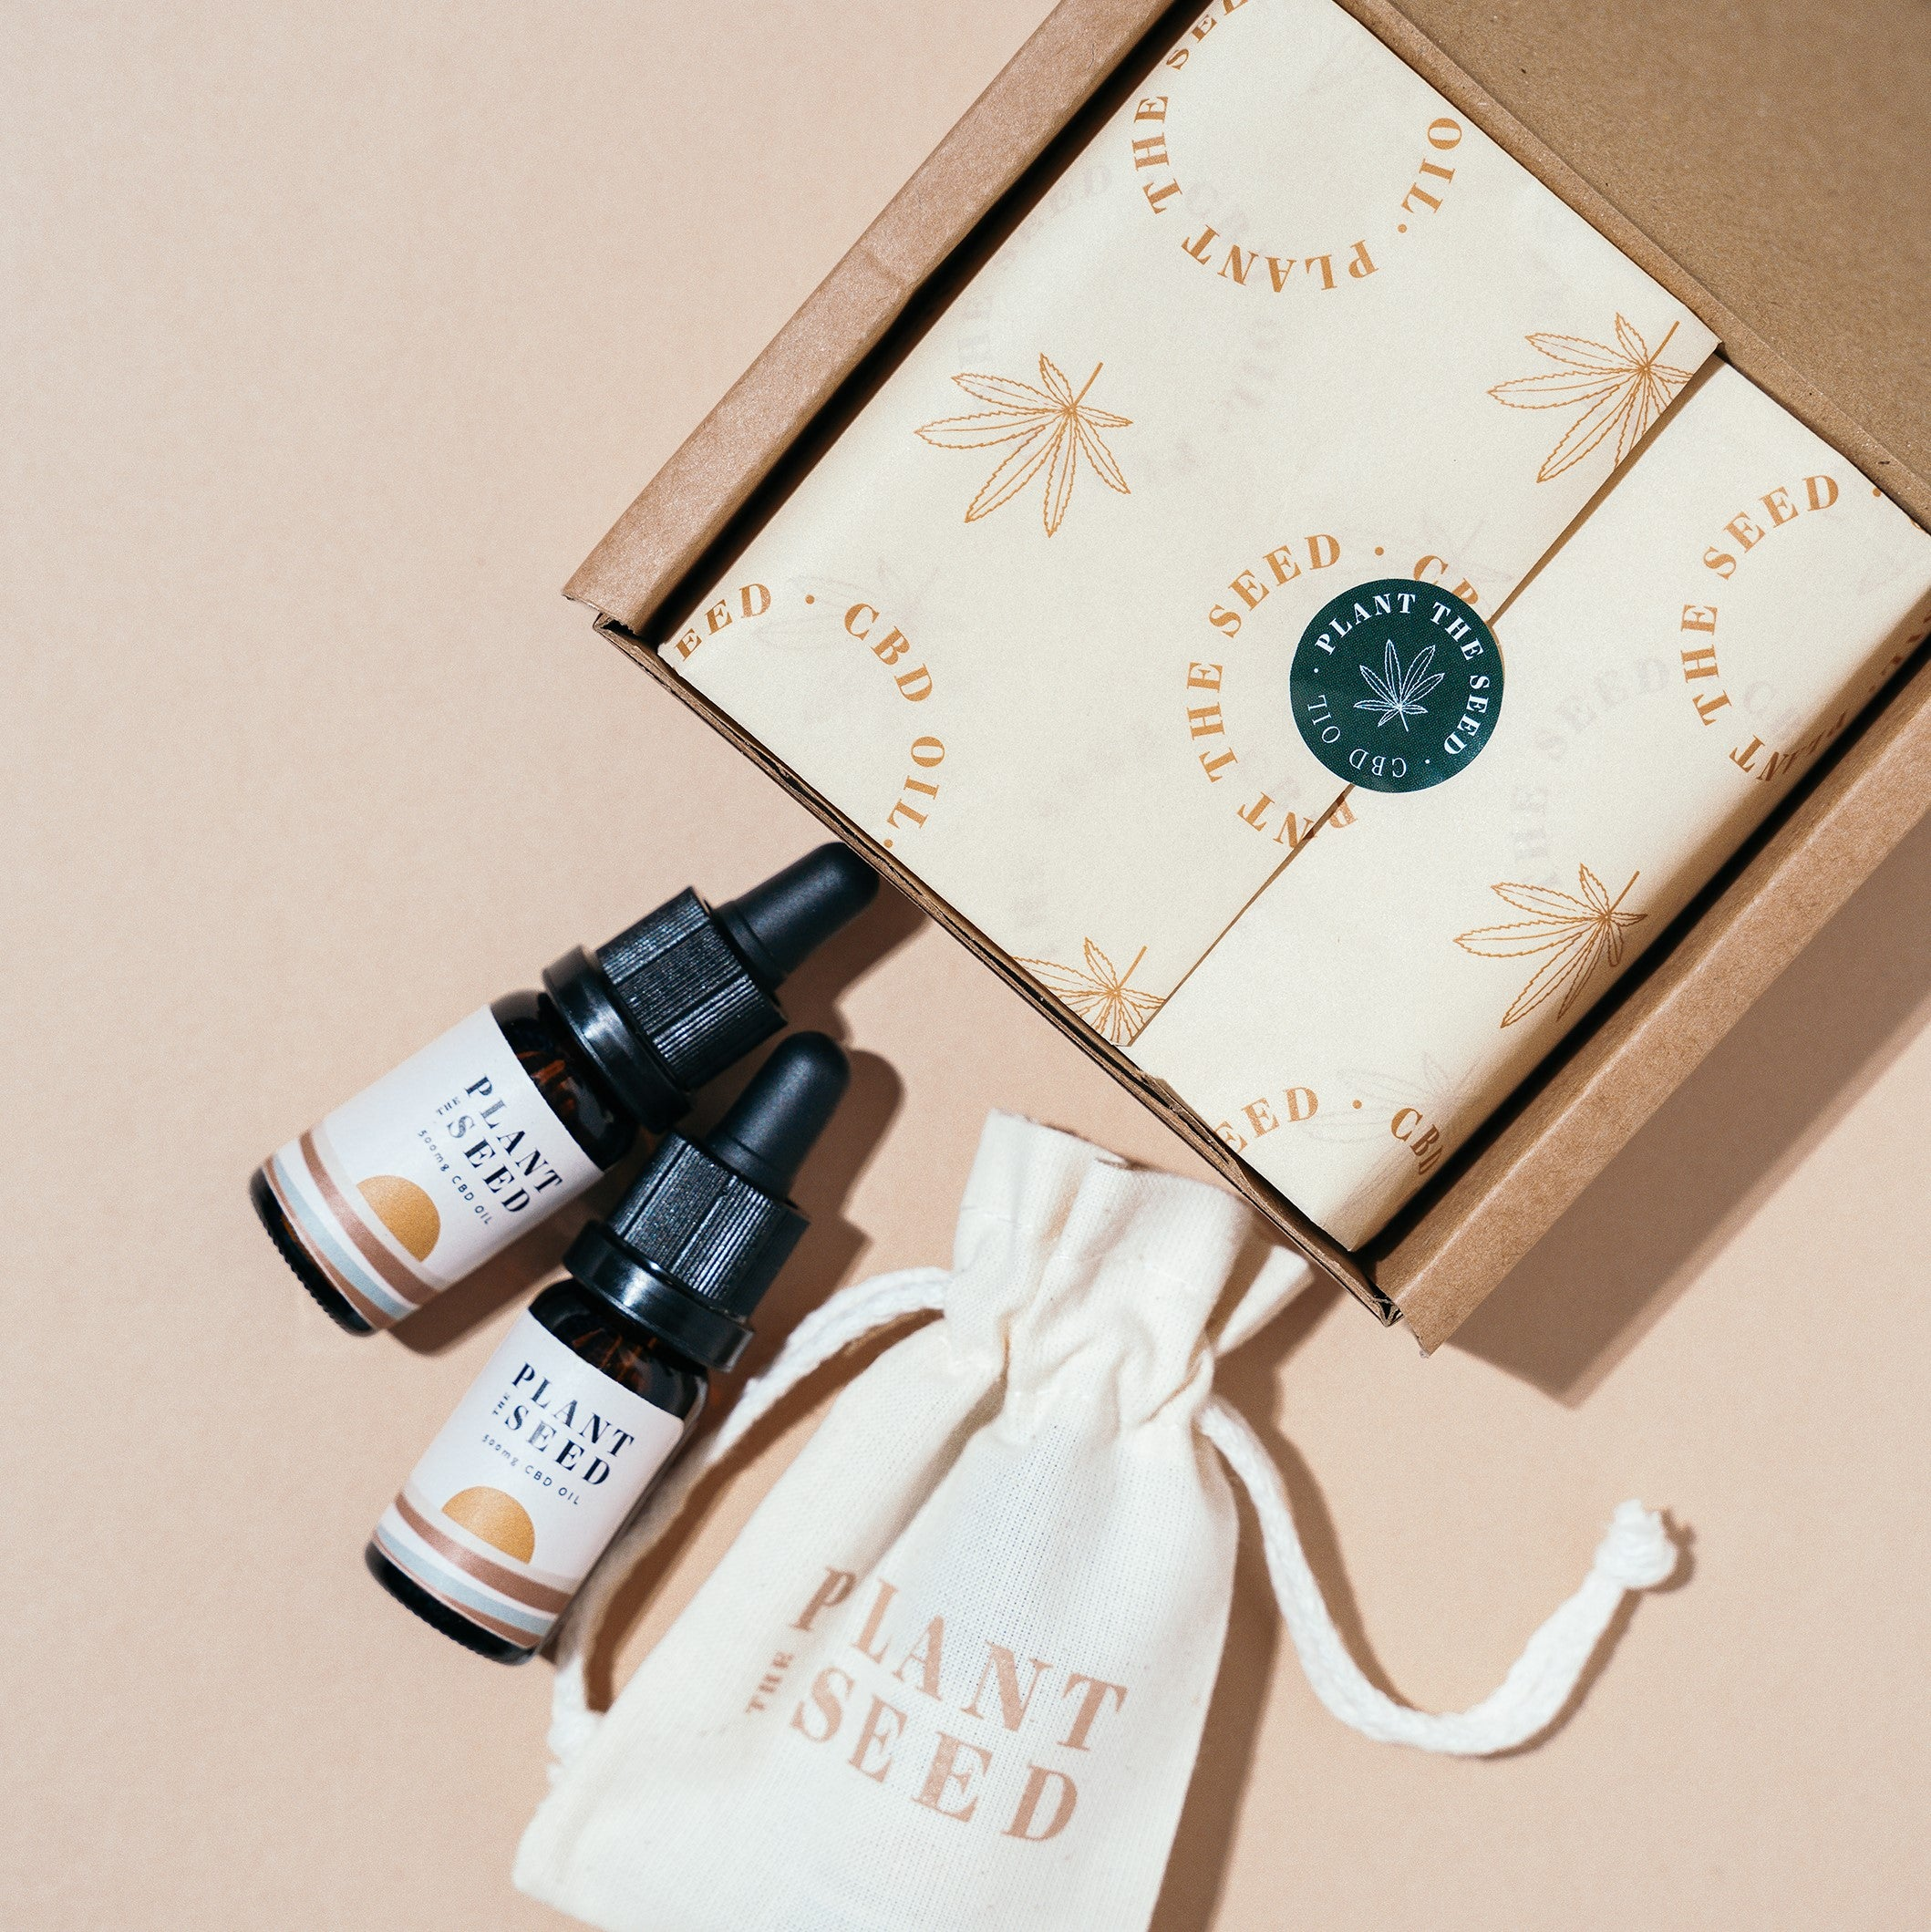 Plant The Seed CBD Products, Bed